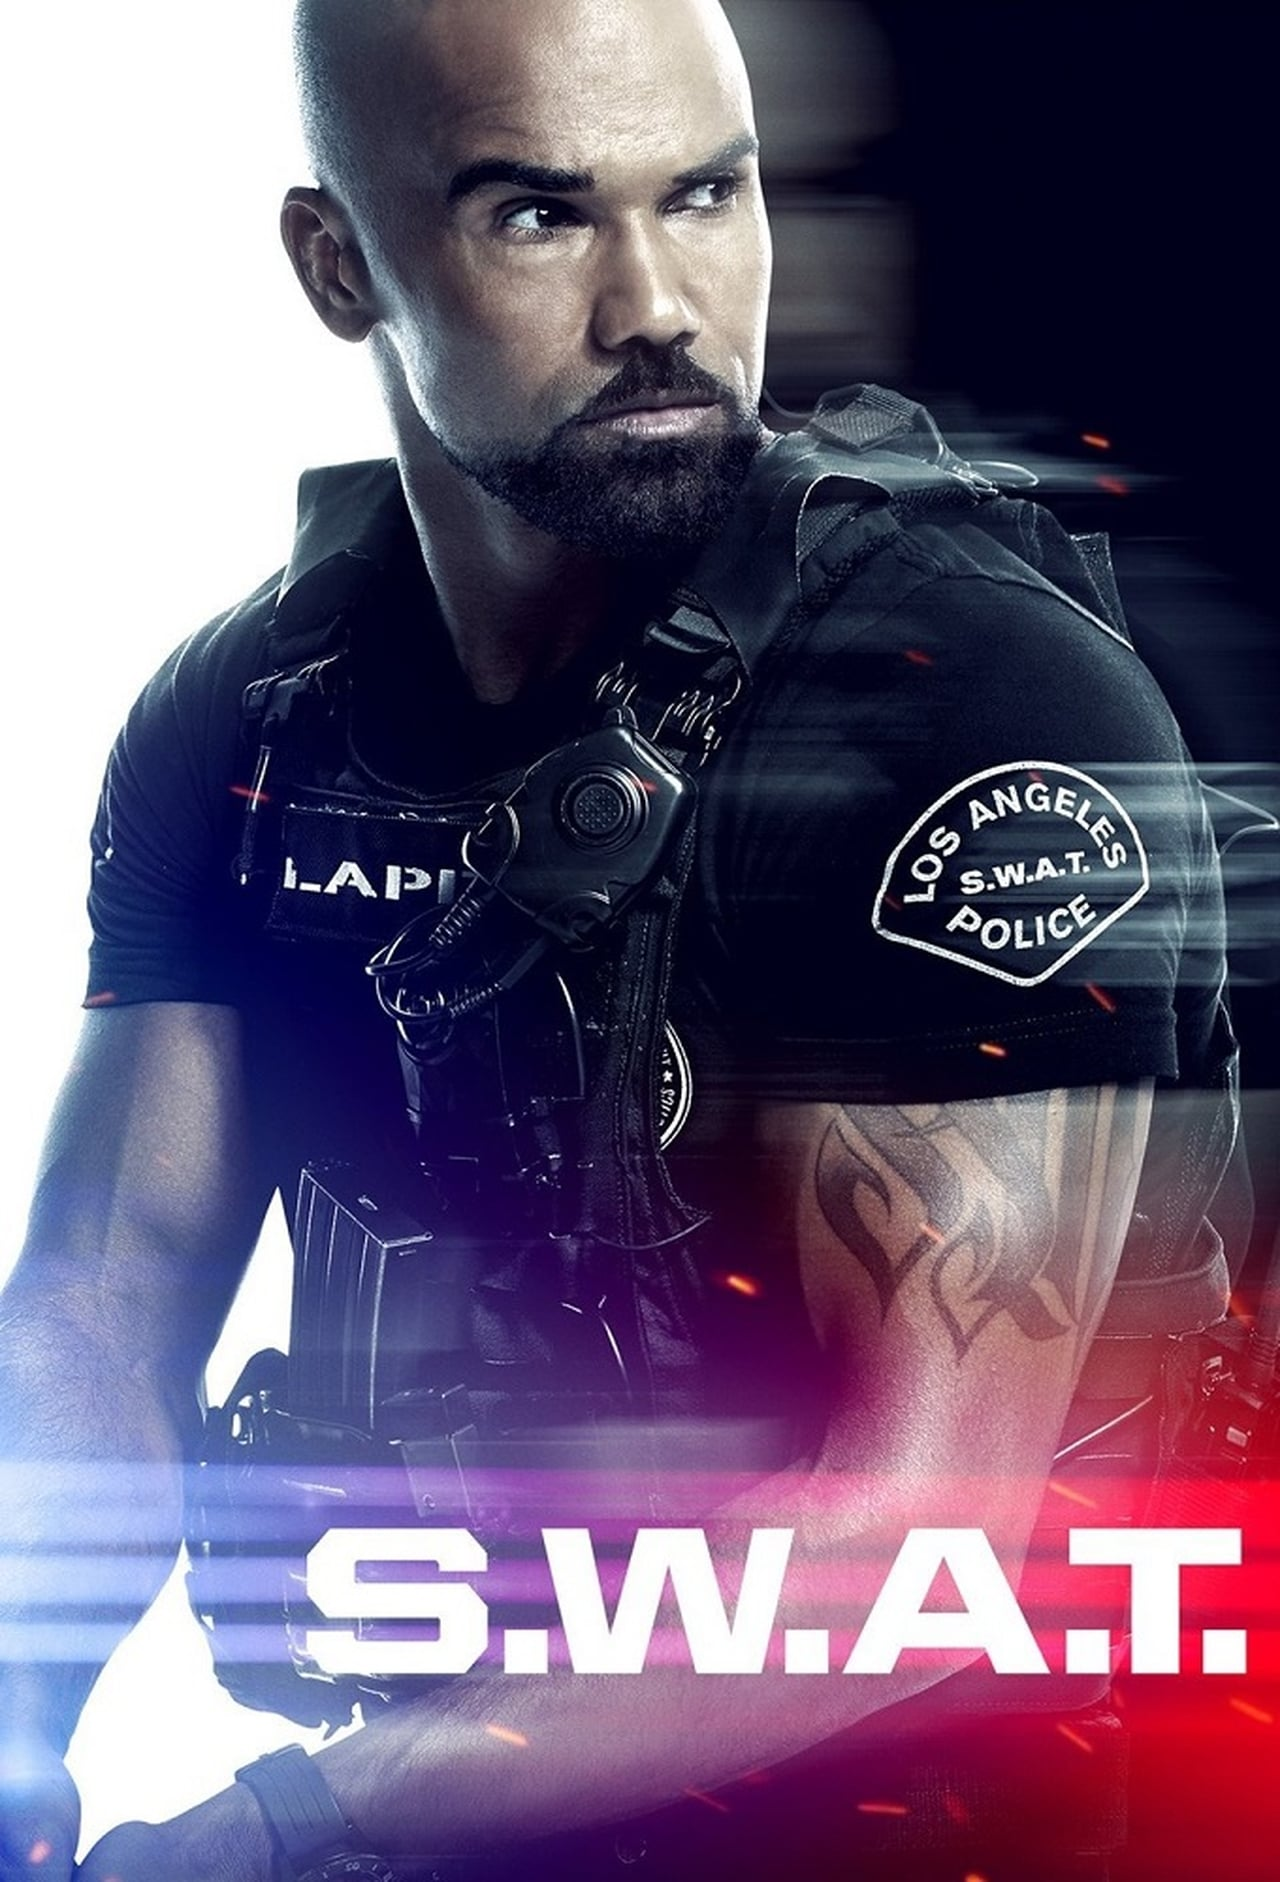 Putlocker S.w.a.t. Season 2 (2018)